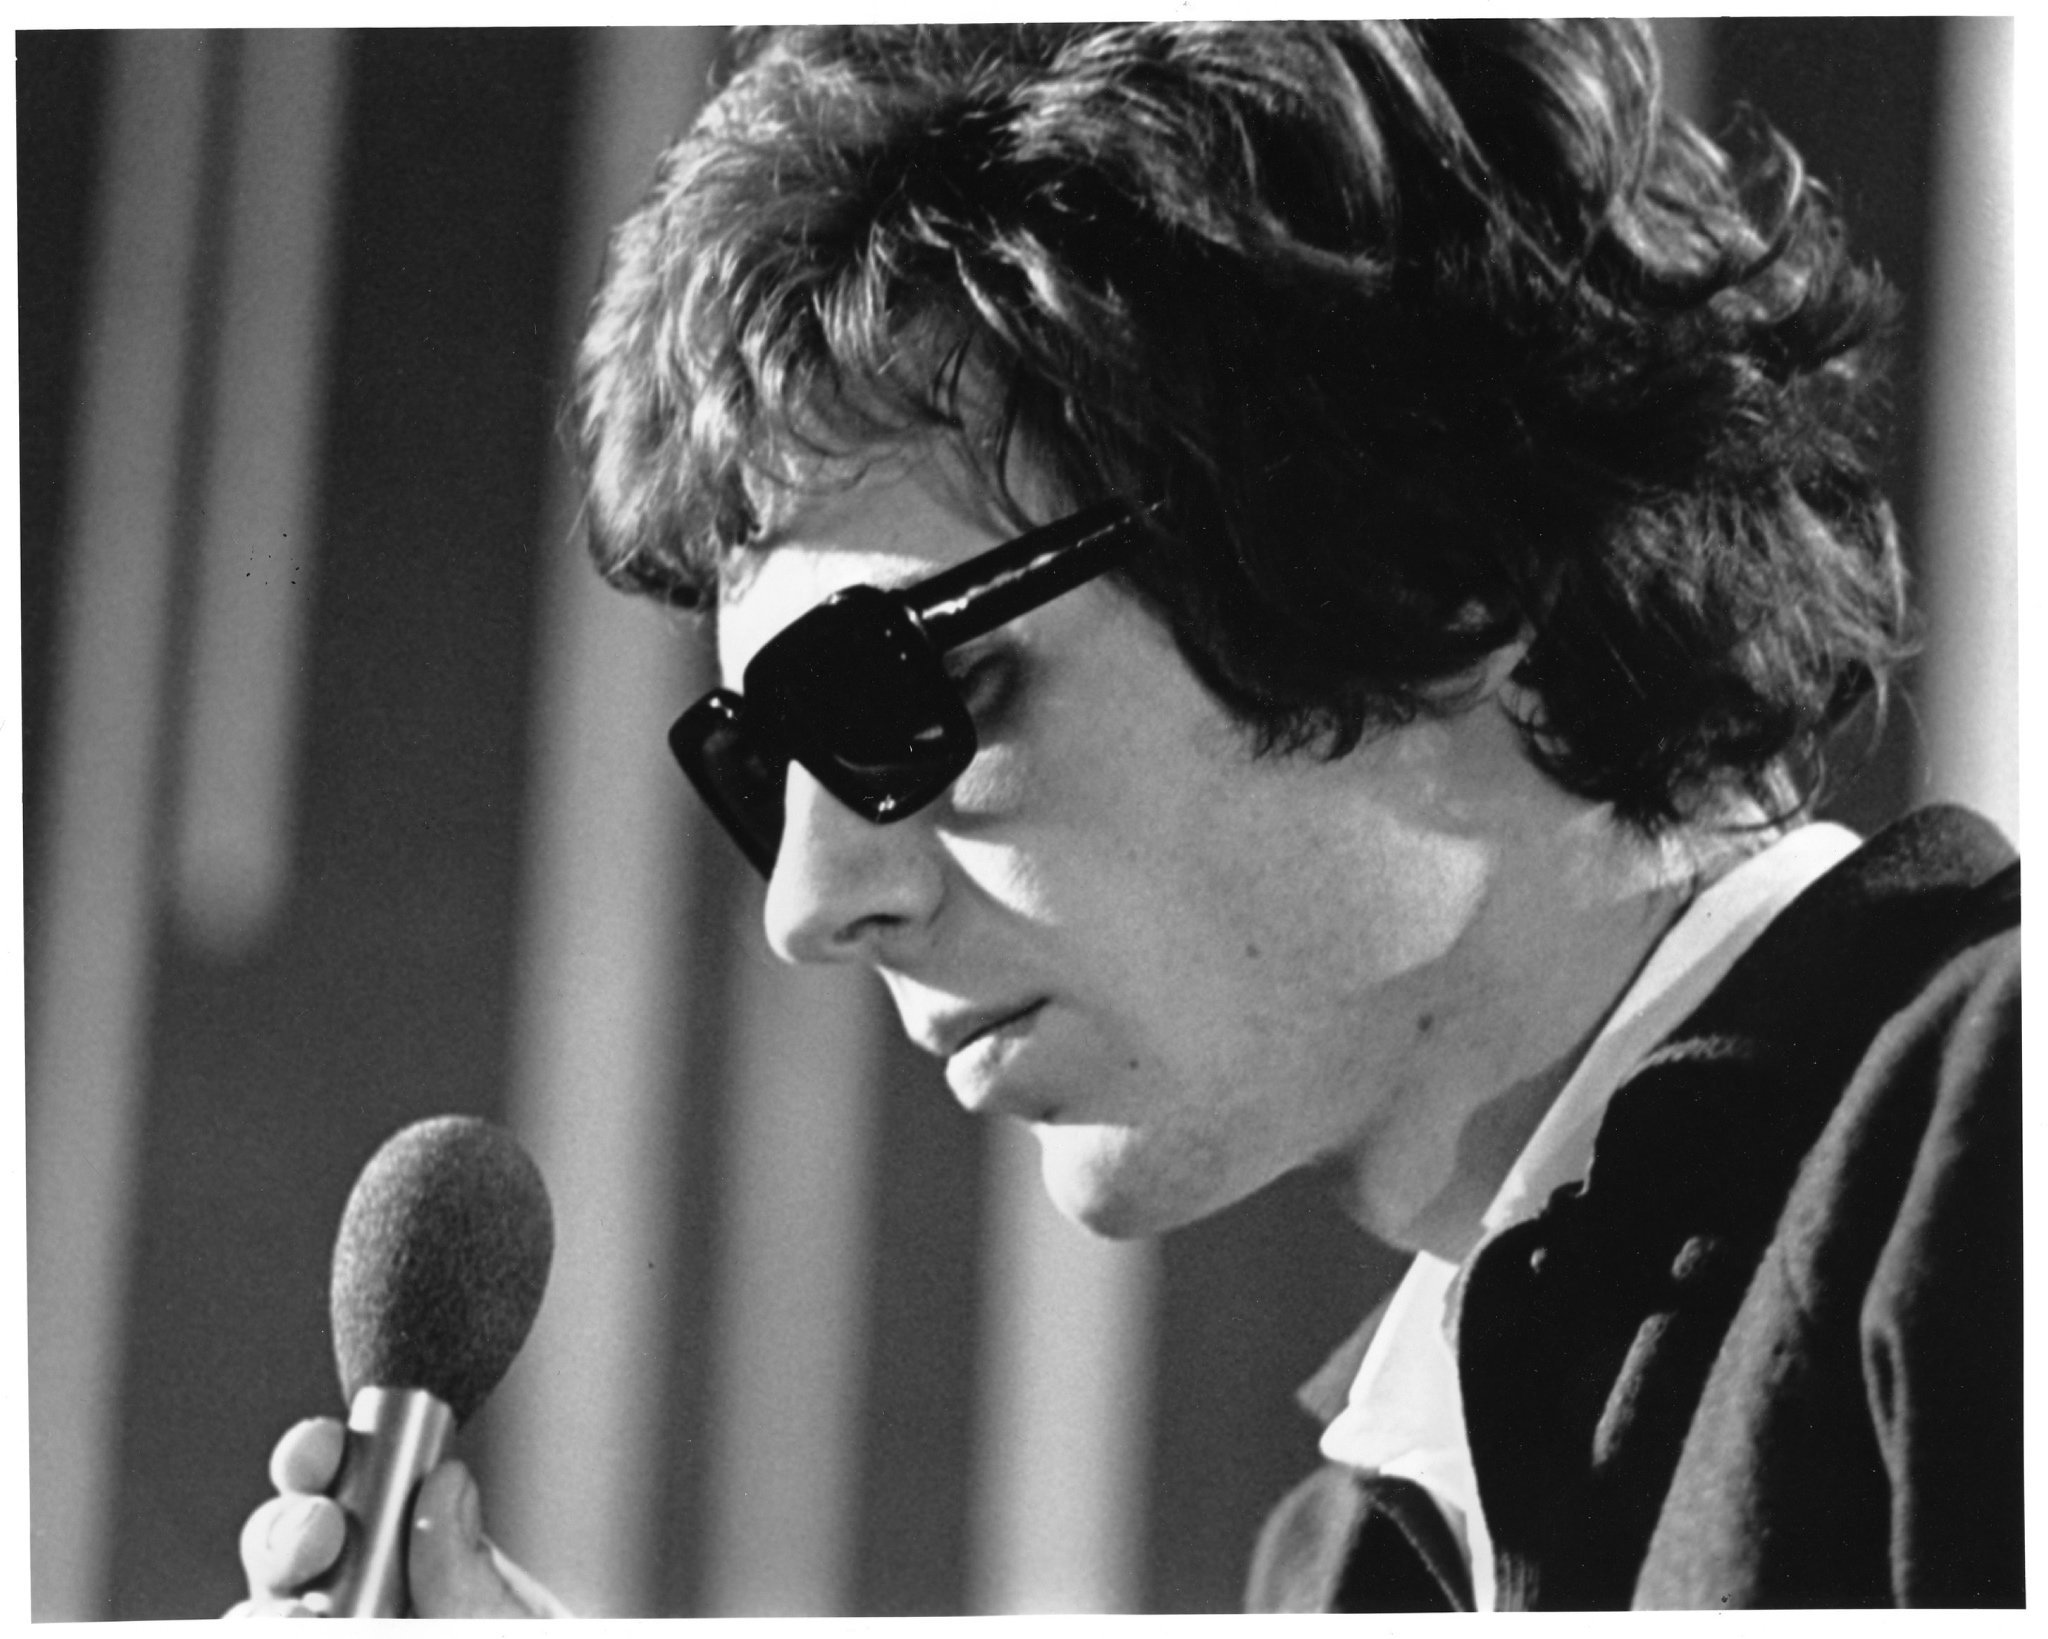 But is it poetry? Review of Sundog: Selected Lyrics by Scott Walker